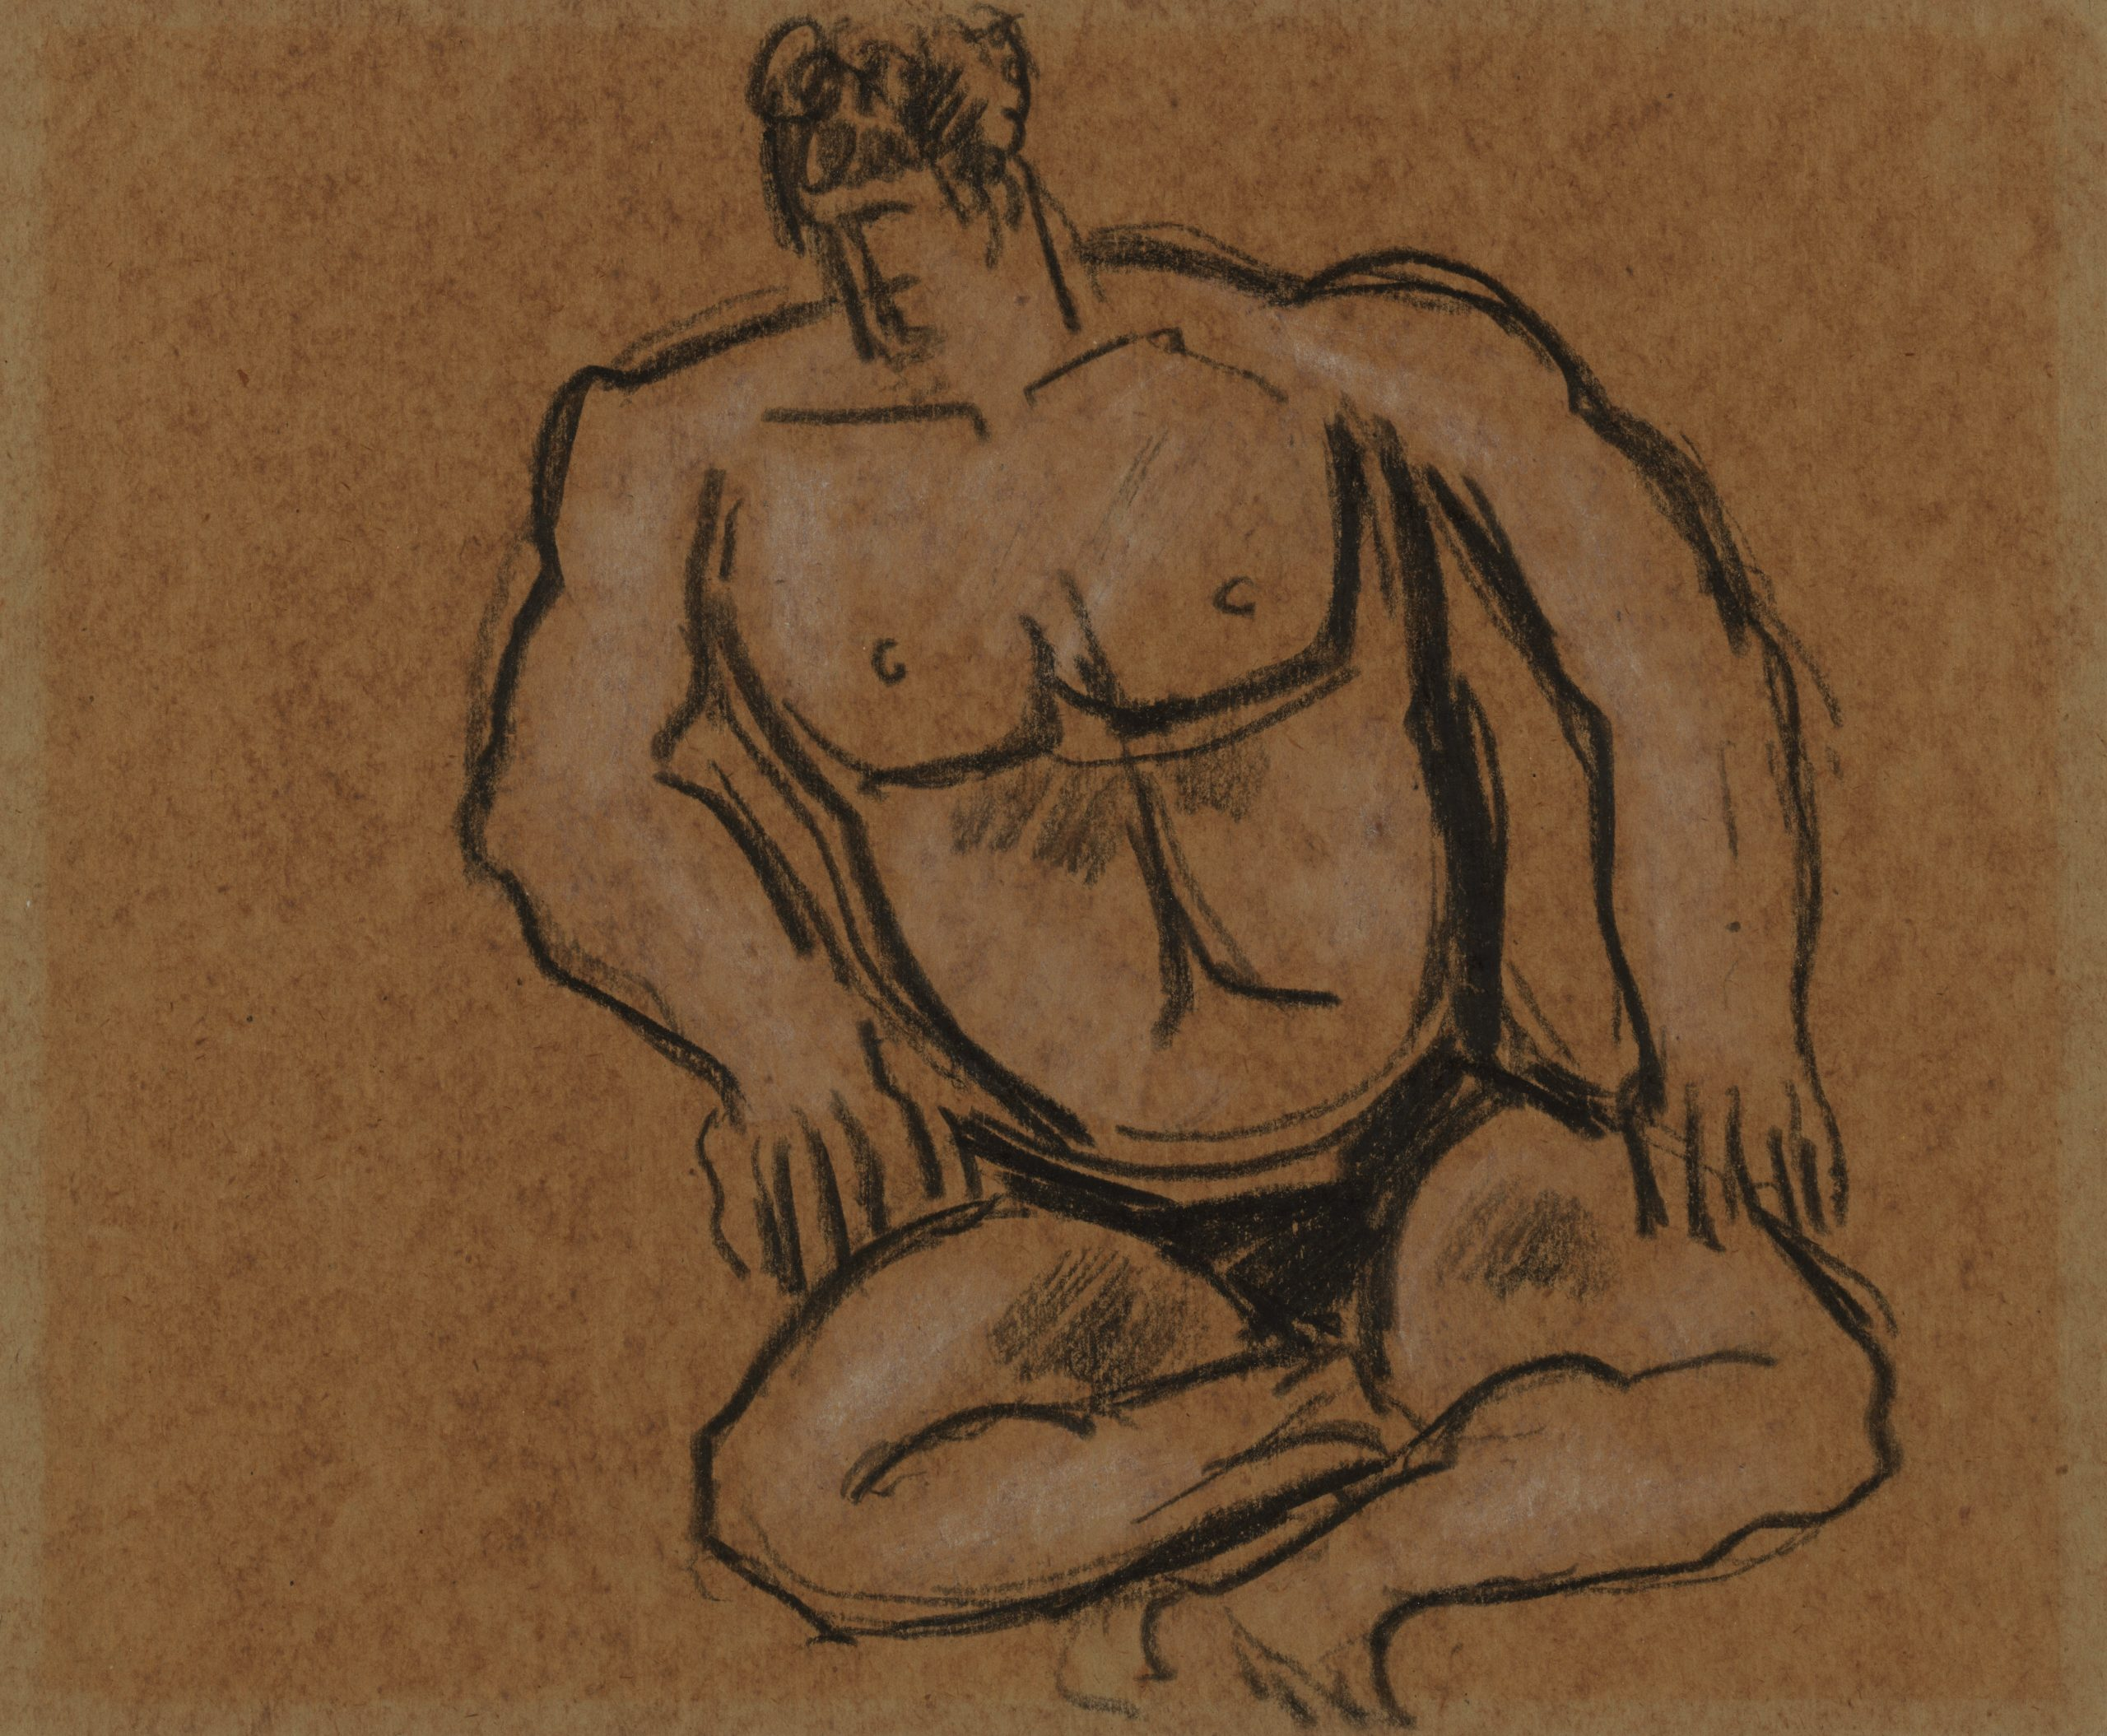 Abstract seated stone figure with a hunched back, naturalistic facial features, and arms resting on the knees.